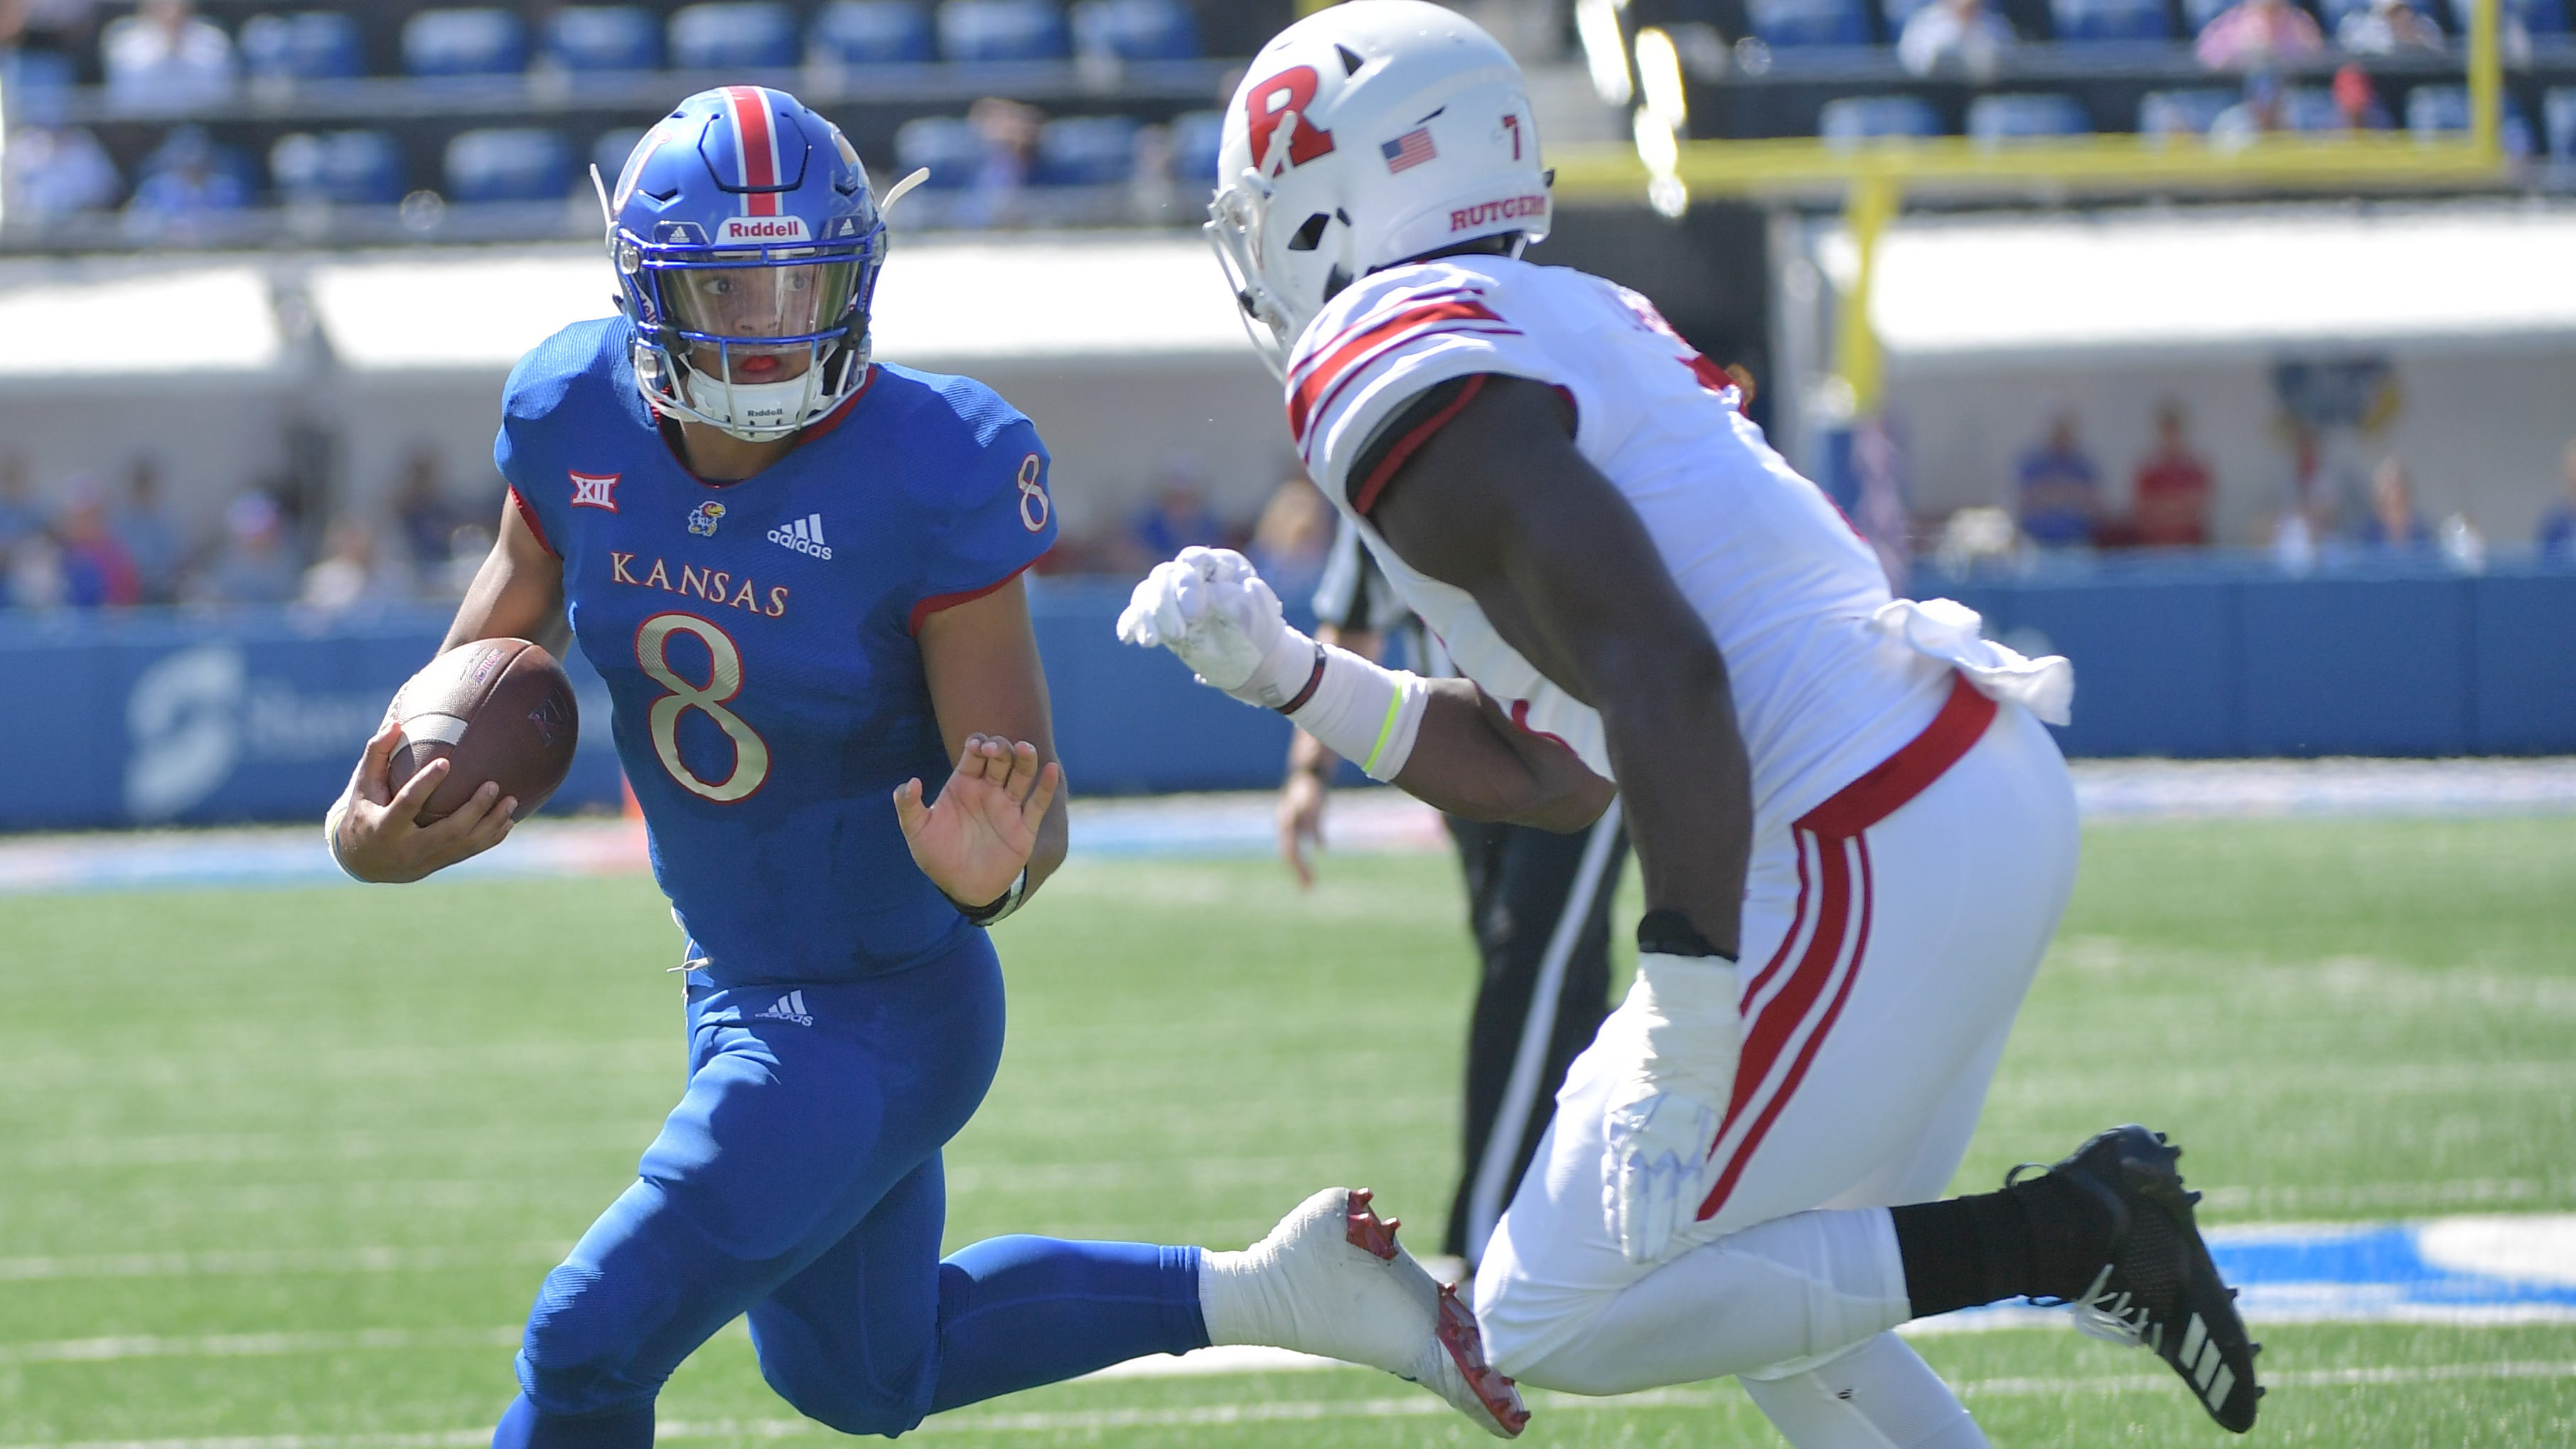 Break up Kansas after back-to-back wins against FBS opponents for first time this decade